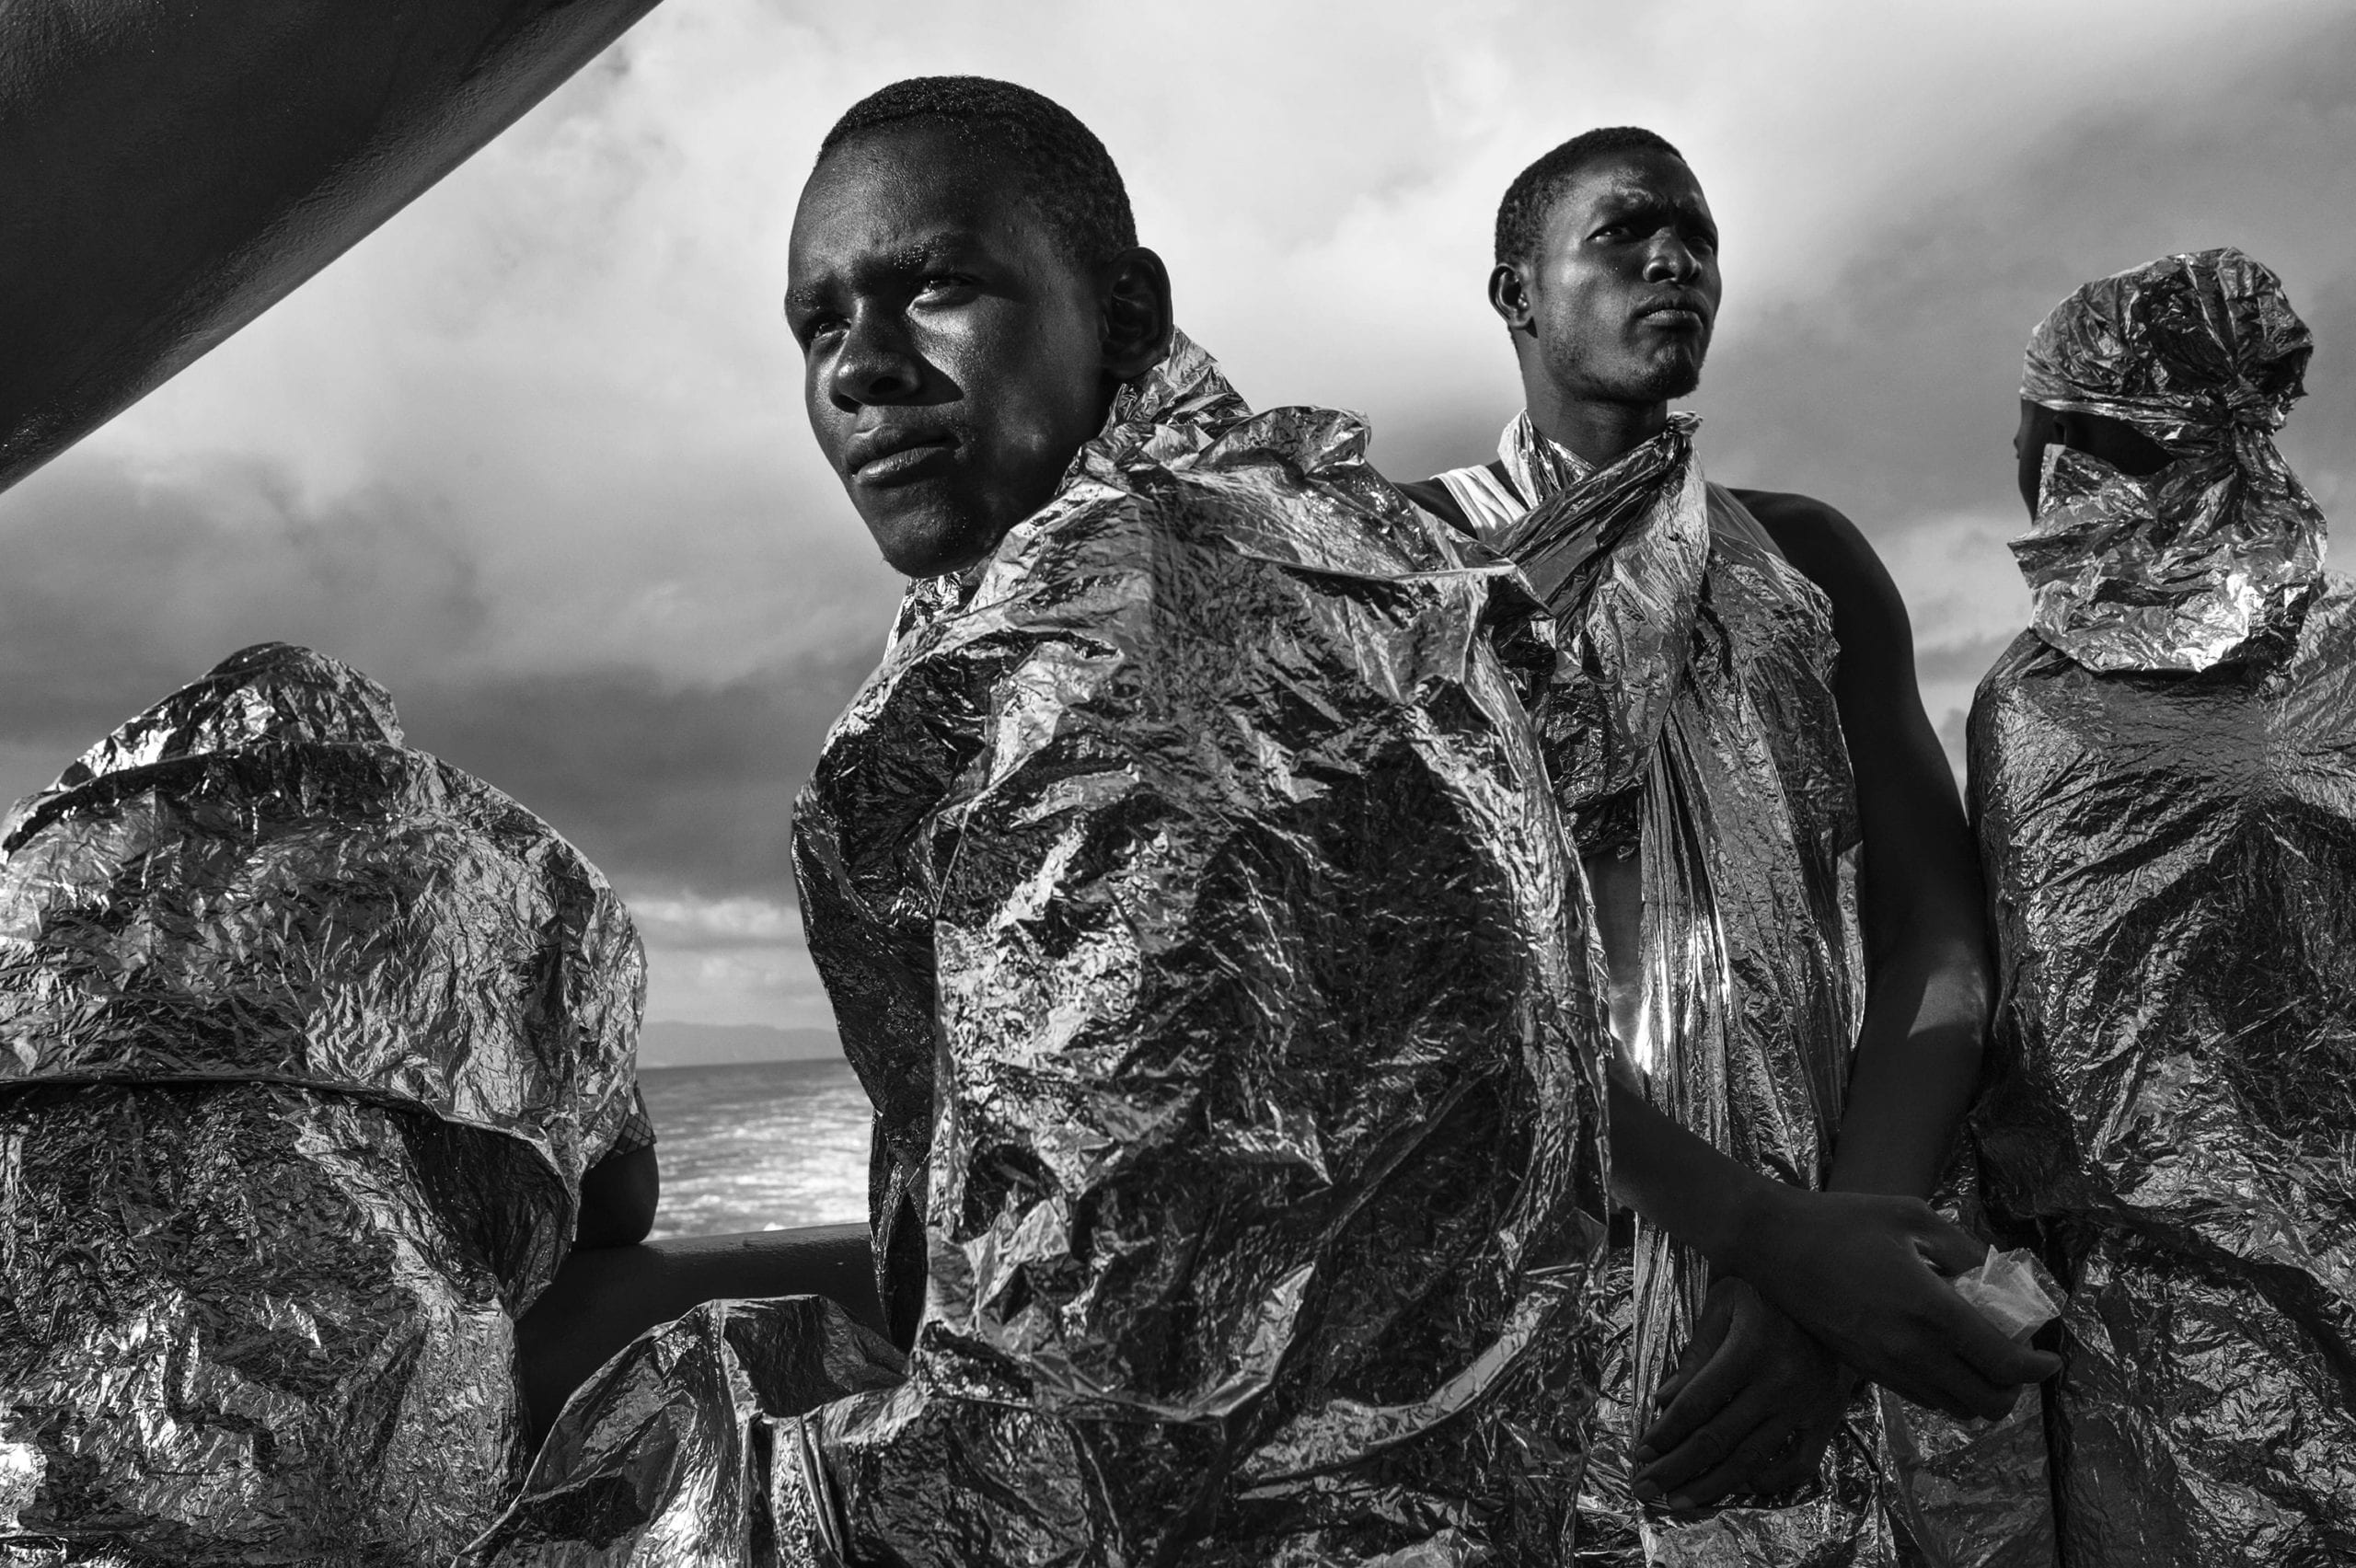 After spending two days and two nights sailing on the Mediterranean Sea on the deck of the M.S.F. (Médecins Sans Frontières - Doctors Without Borders) search and rescue ship Bourbon Argos, rescued migrants - still wrapped in their emergency blankets - catch sight of the Italian coast for the first time soon after dawn. 23 August 2015. In 2015 the ever-increasing number of migrants attempting to cross the Mediterranean Sea on unseaworthy vessels towards Europe led to an unprecedented crisis. Nearly 120 thousand people have reached Italy in the first 8 months of the year. While the European governments struggled to deal with the influx, the death toll in the Mediterranean reached record numbers. Early in May the international medical relief organization Médecins Sans Frontières (M.S.F.) joined in the search and rescue operations led in the Mediterranean Sea and launched three ships at different stages: the Phoenix (run by the Migrant Offshore Aid Station), the Bourbon Argos and Dignity (c) Francesco Zizola